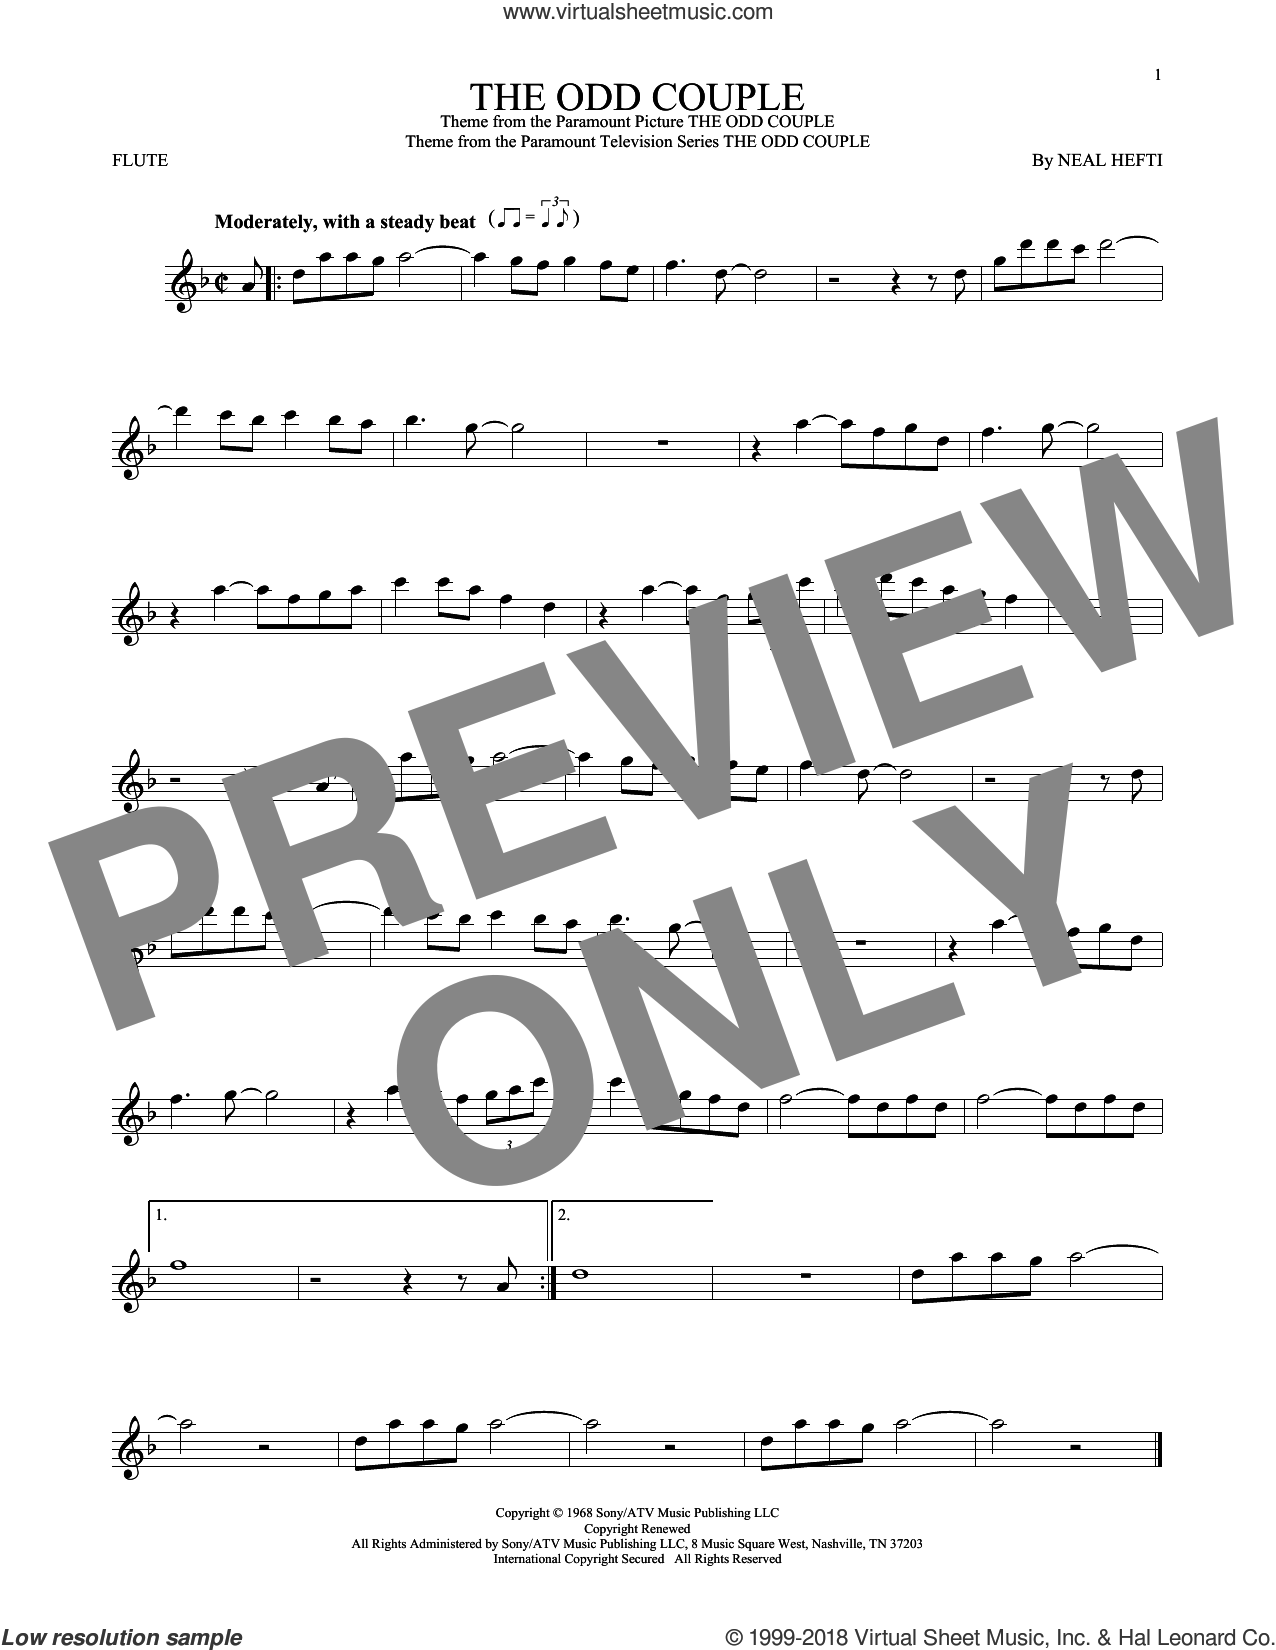 The Odd Couple sheet music for flute solo by Sammy Cahn and Neal Hefti, intermediate skill level